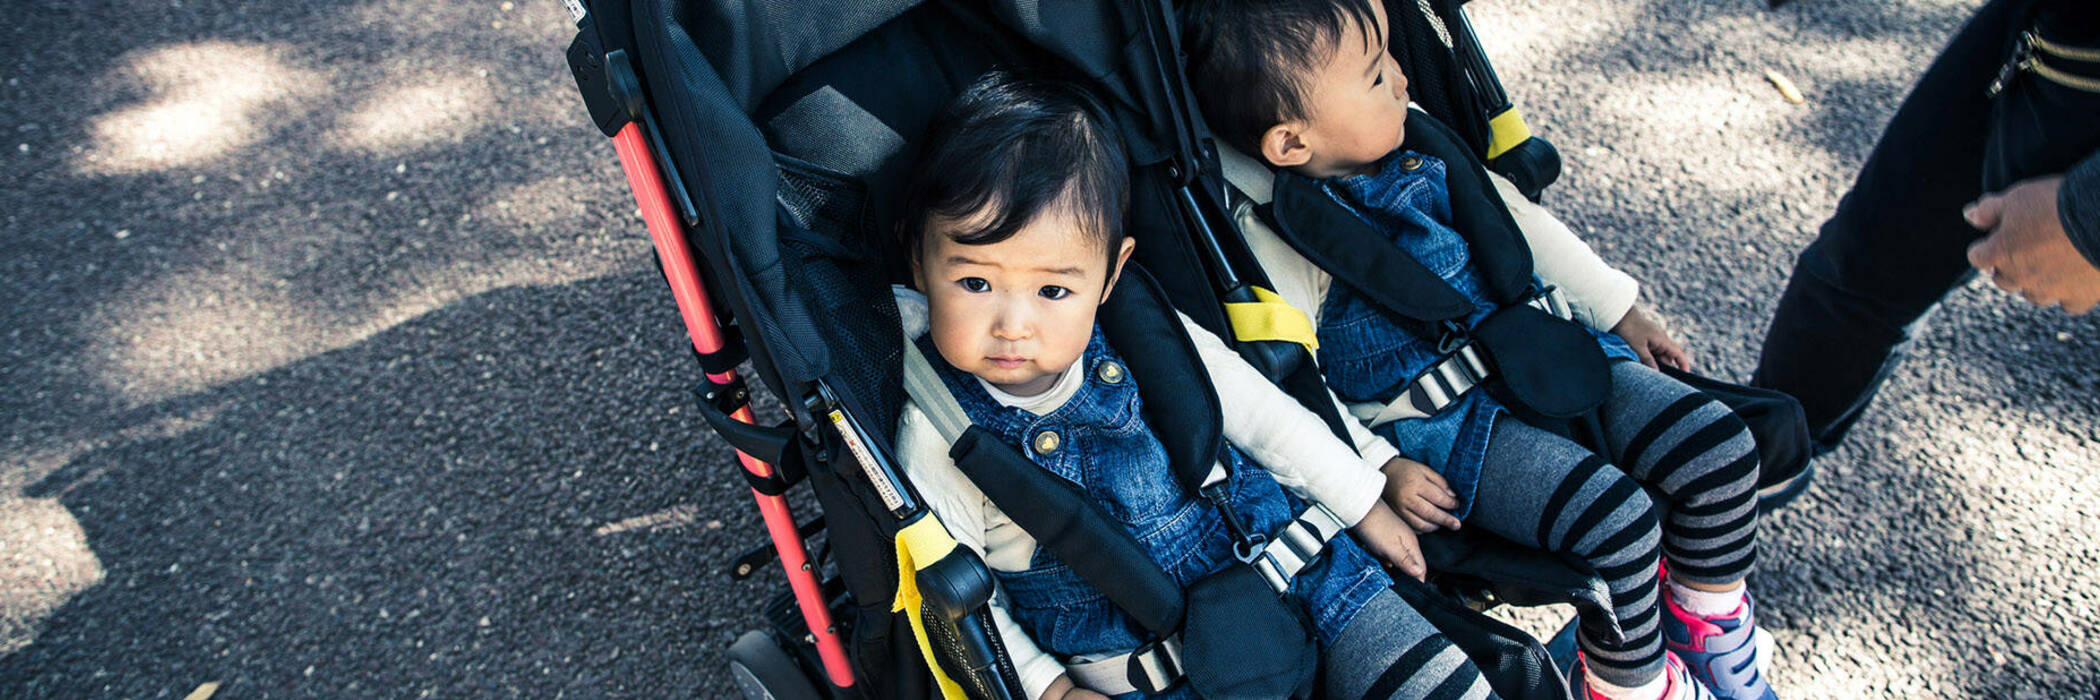 Two toddlers sitting in a side-by-side stroller.